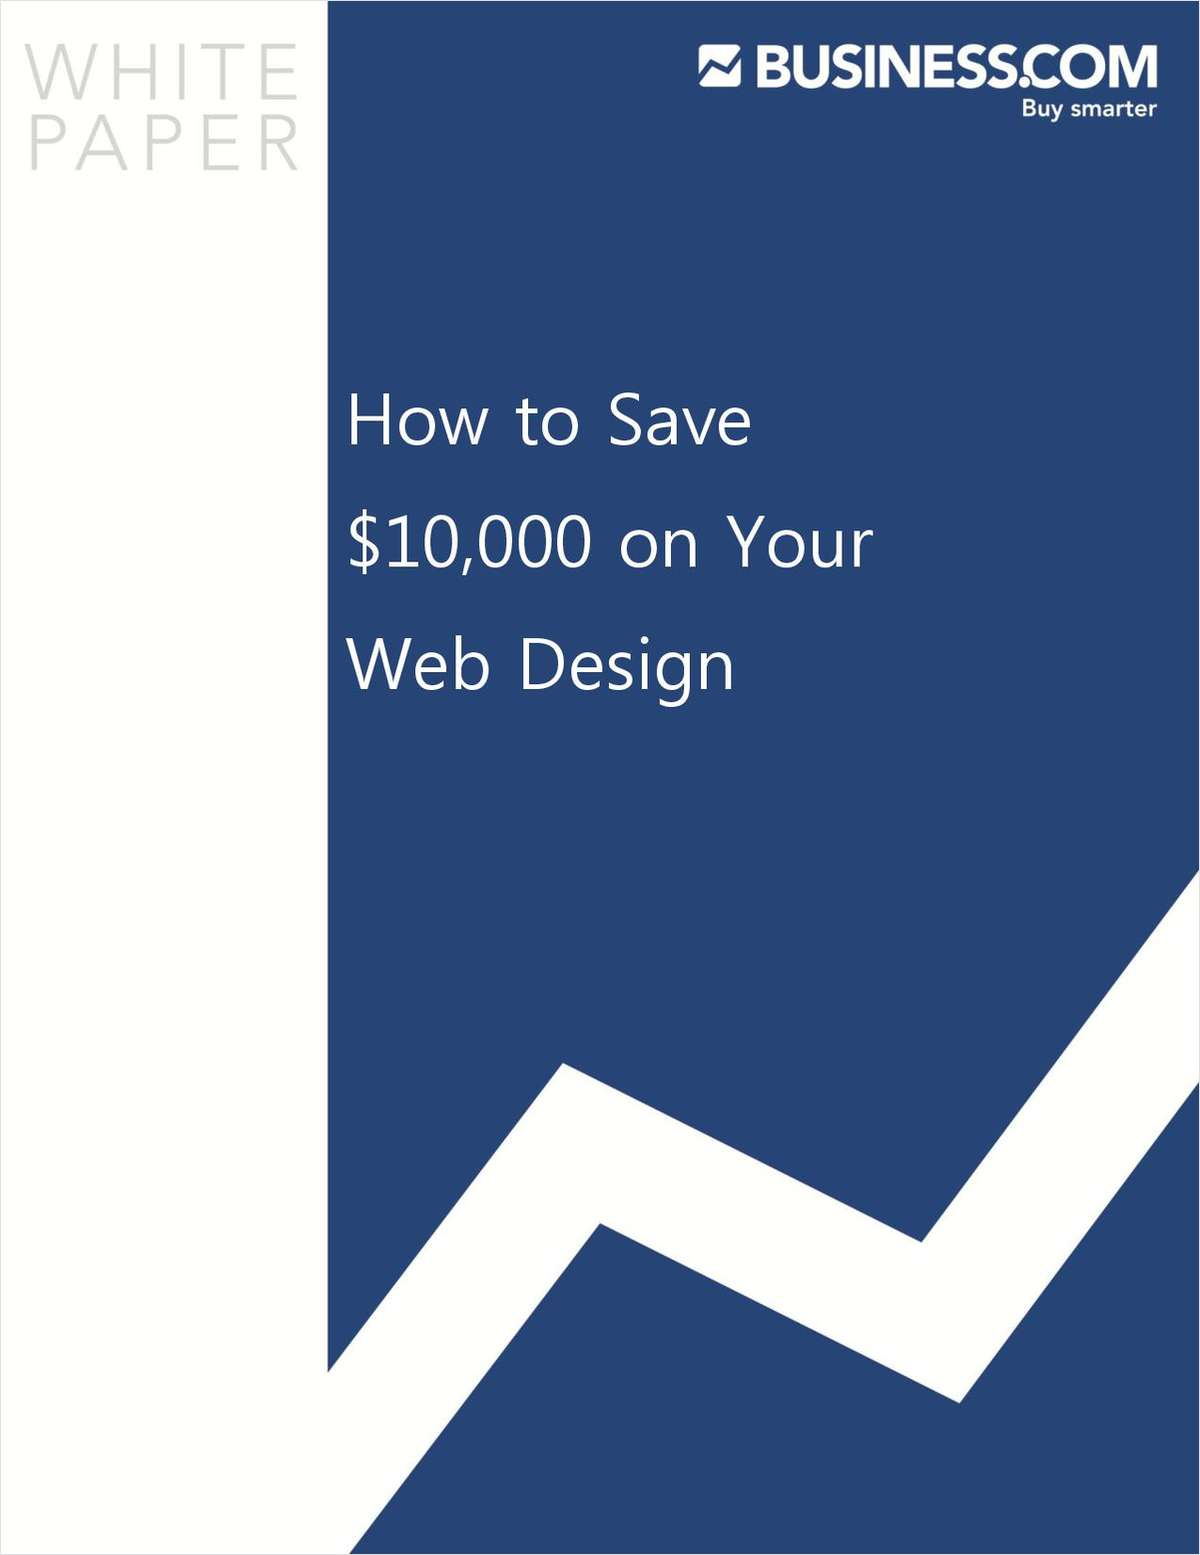 How to Save $10,000 on Your Web Site Design